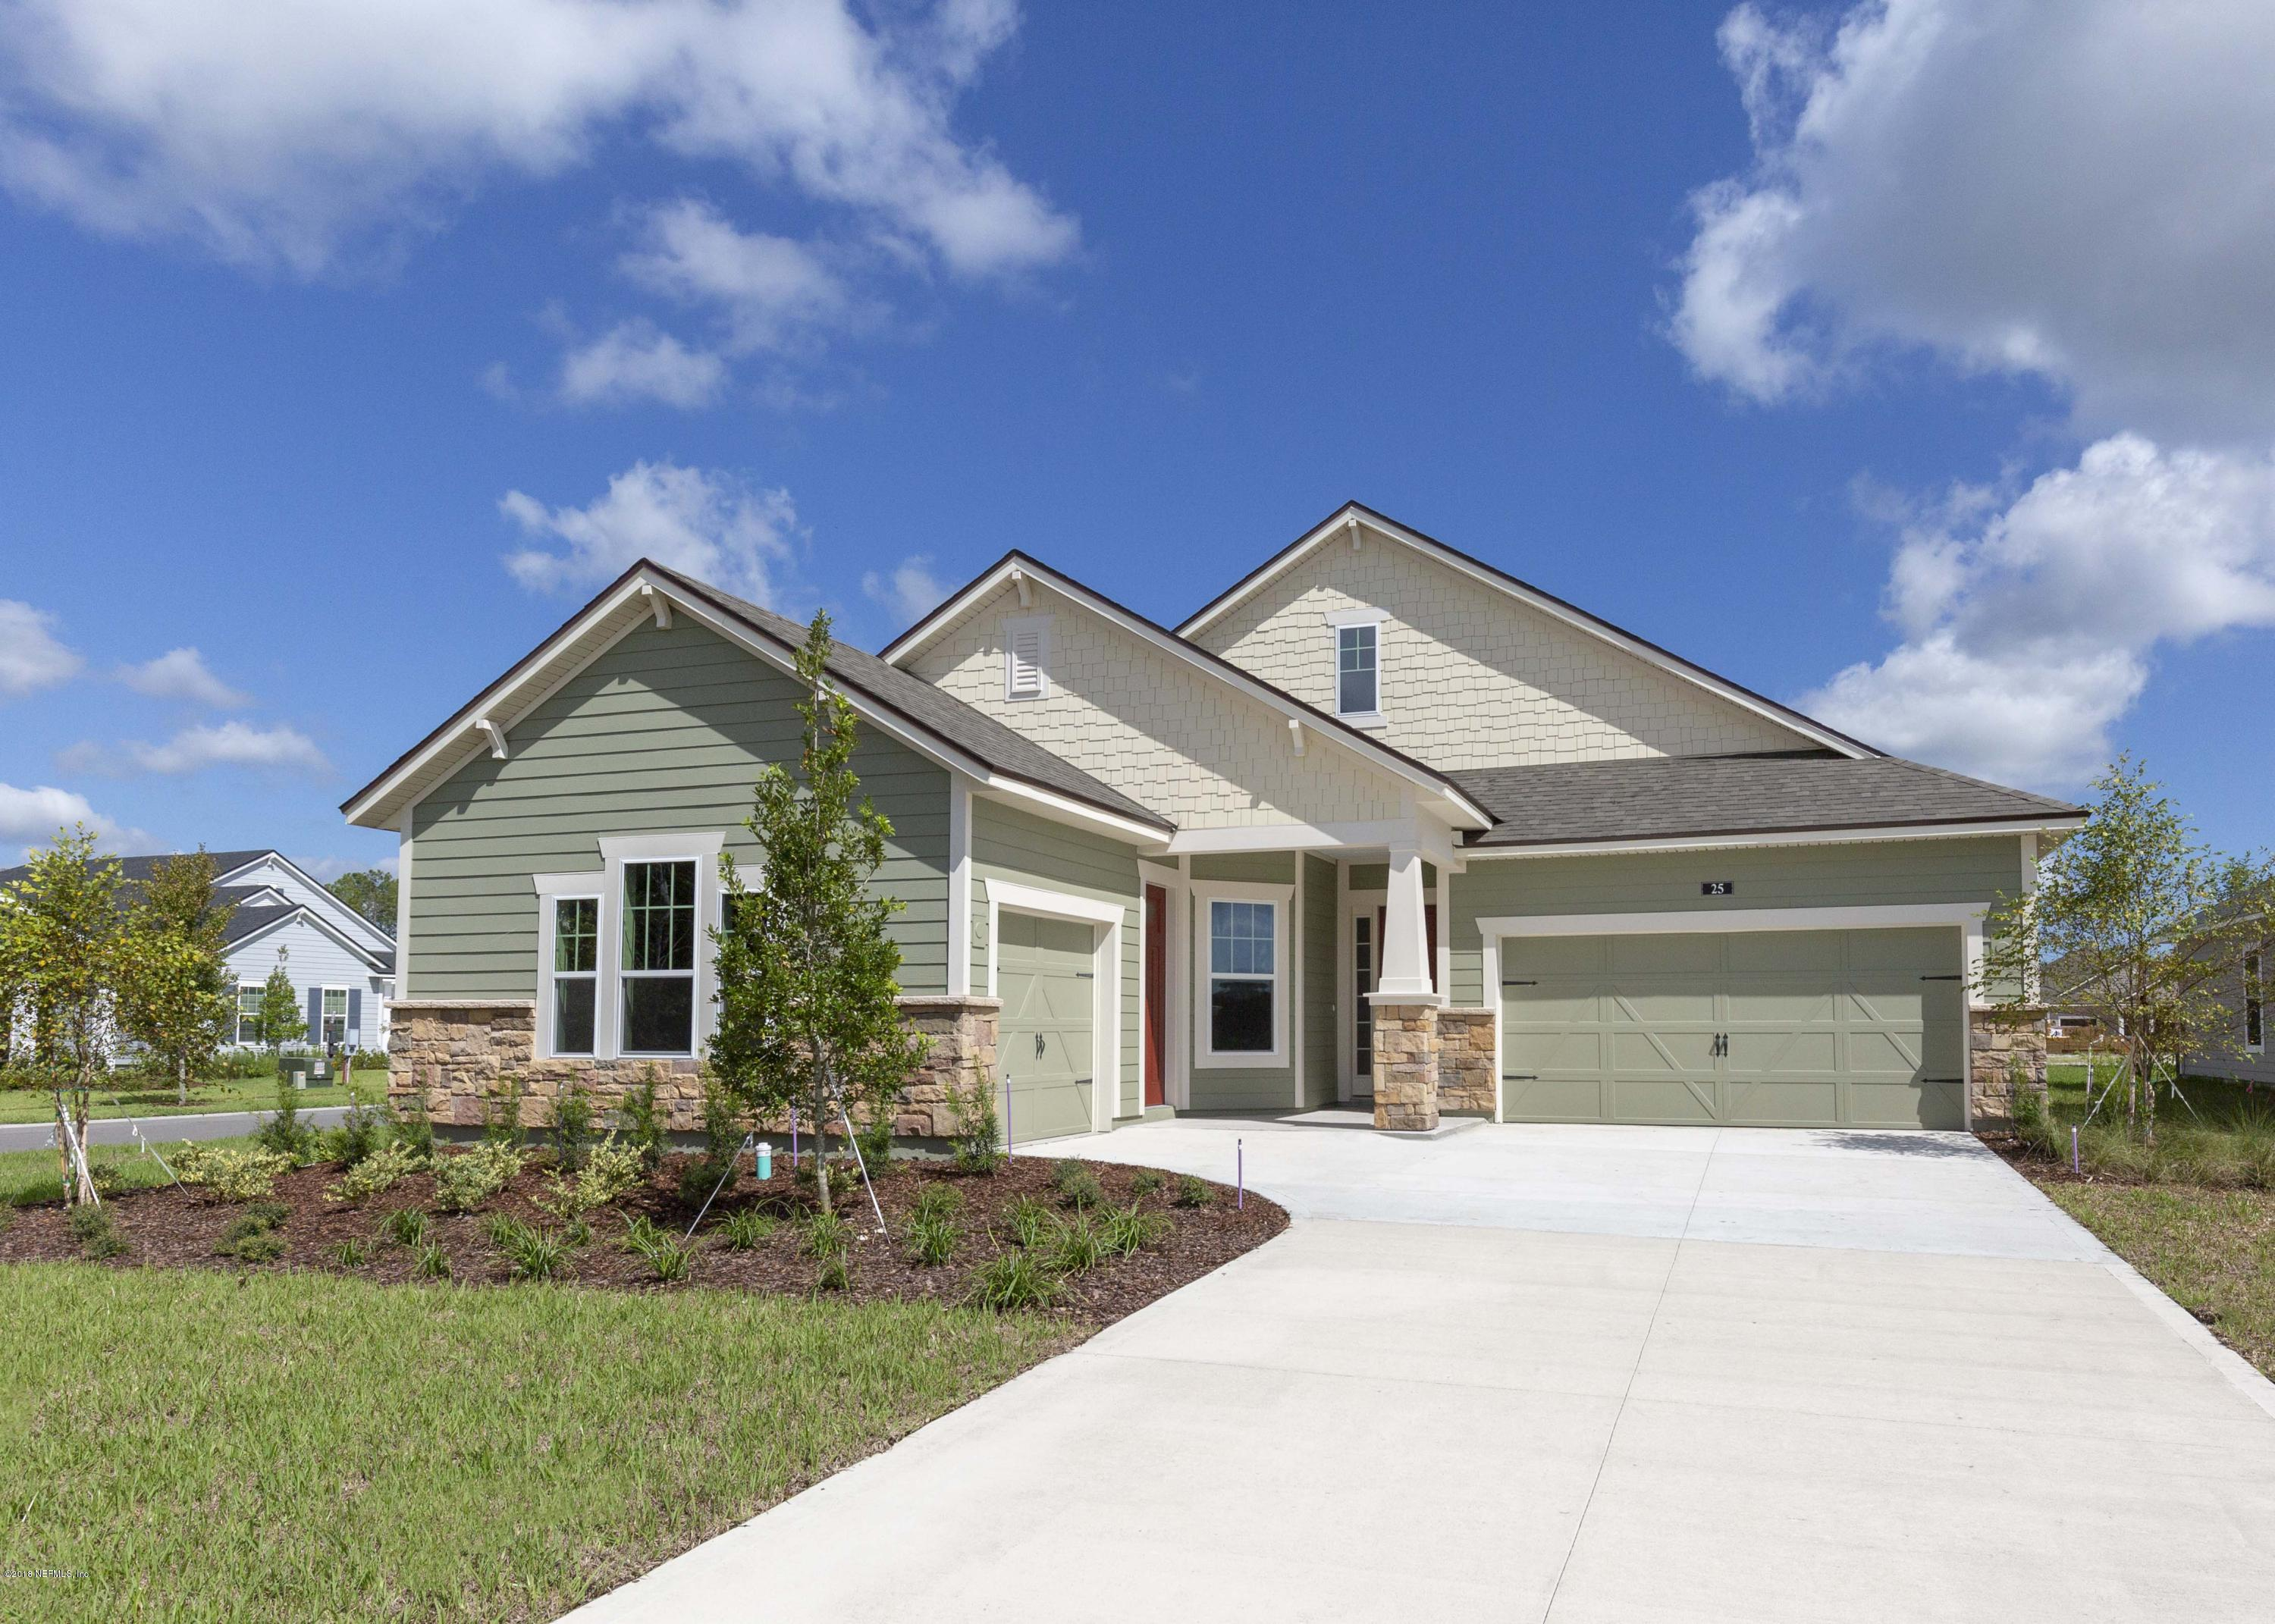 Photo of 25 AUTUMN KNOLL, JACKSONVILLE, FL 32081